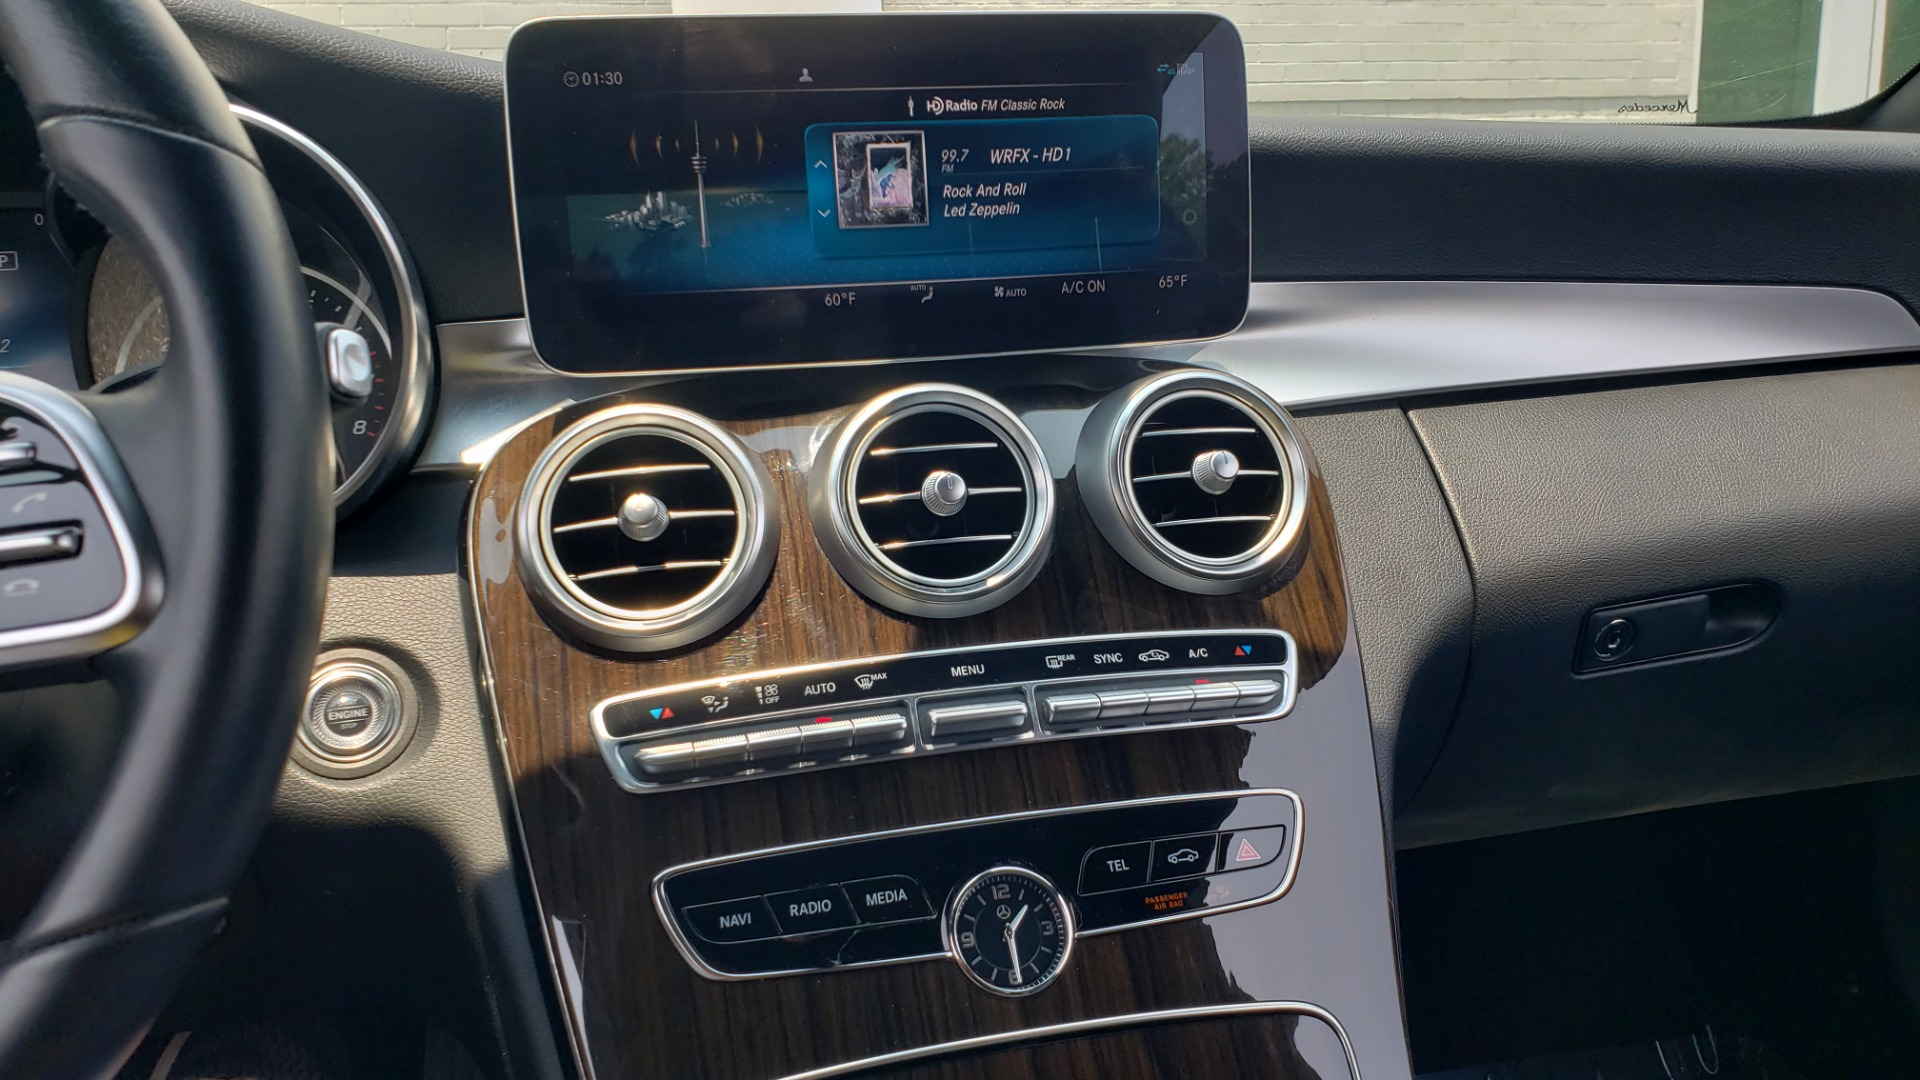 Used 2019 Mercedes-Benz C-CLASS C 300 CABRIOLET 2.0L / AUTO / NAV / HD RADIO / REARVIEW for sale $46,995 at Formula Imports in Charlotte NC 28227 49